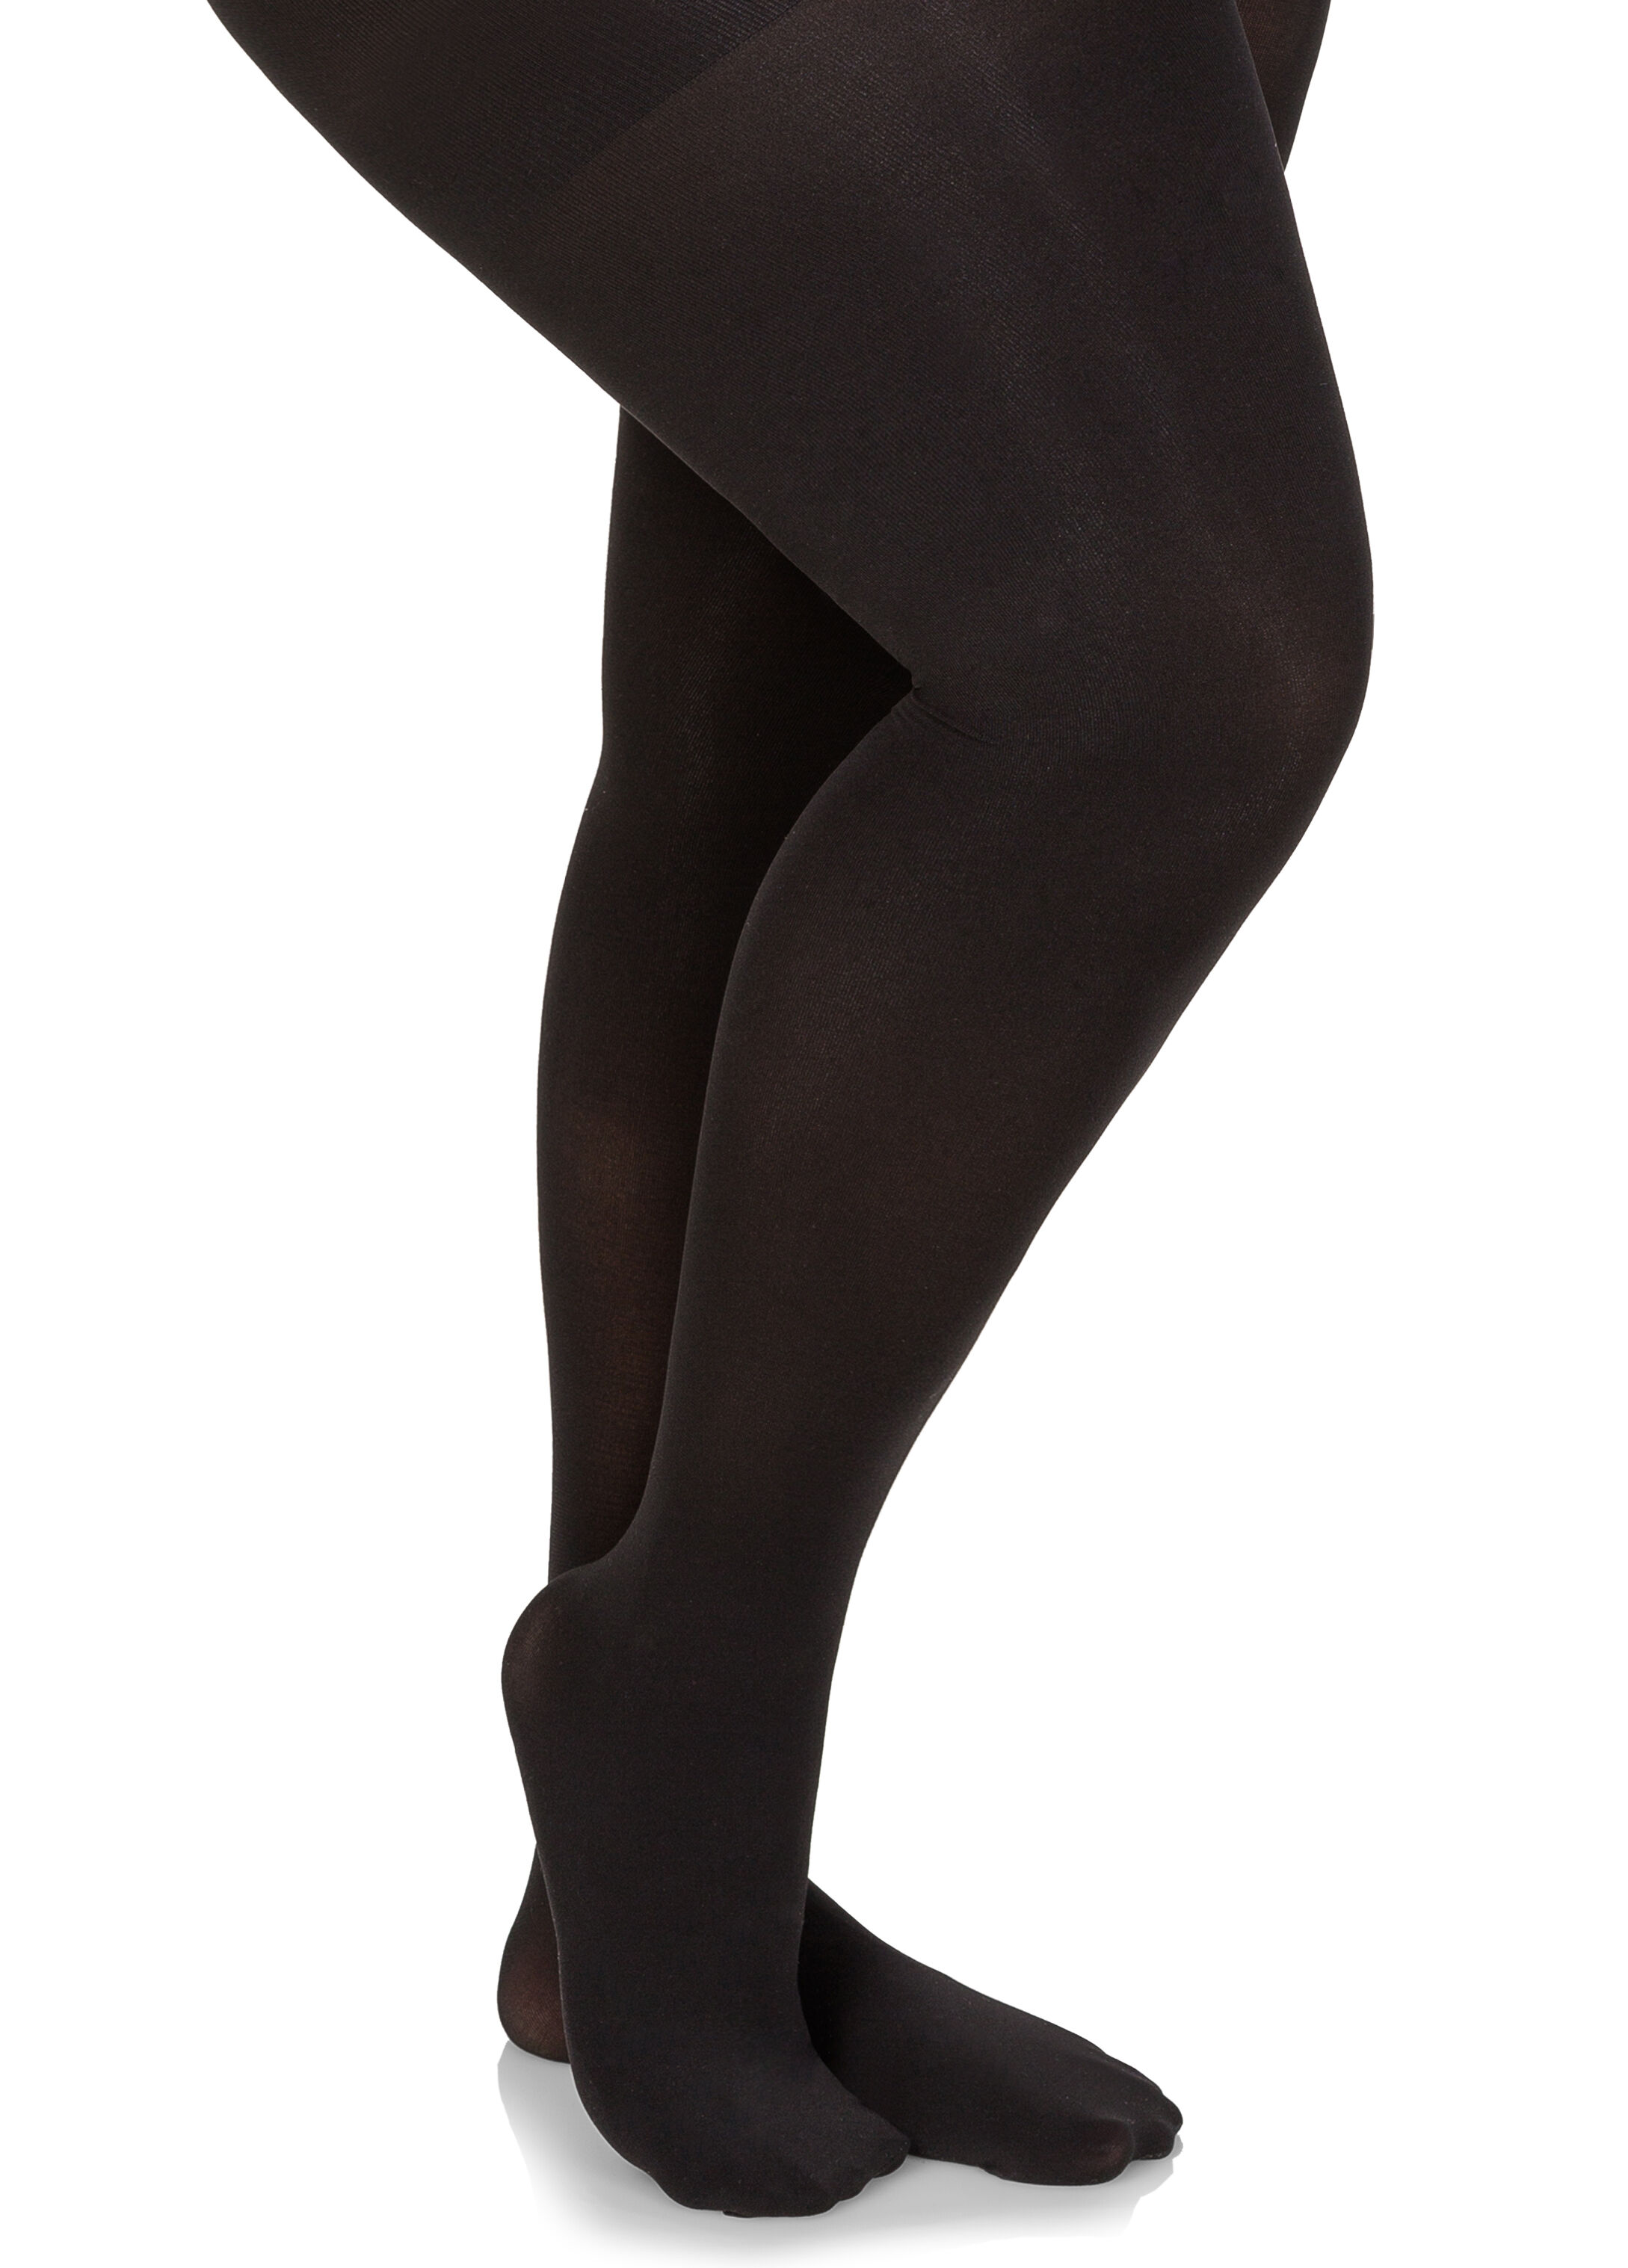 Footed Opaque Tights